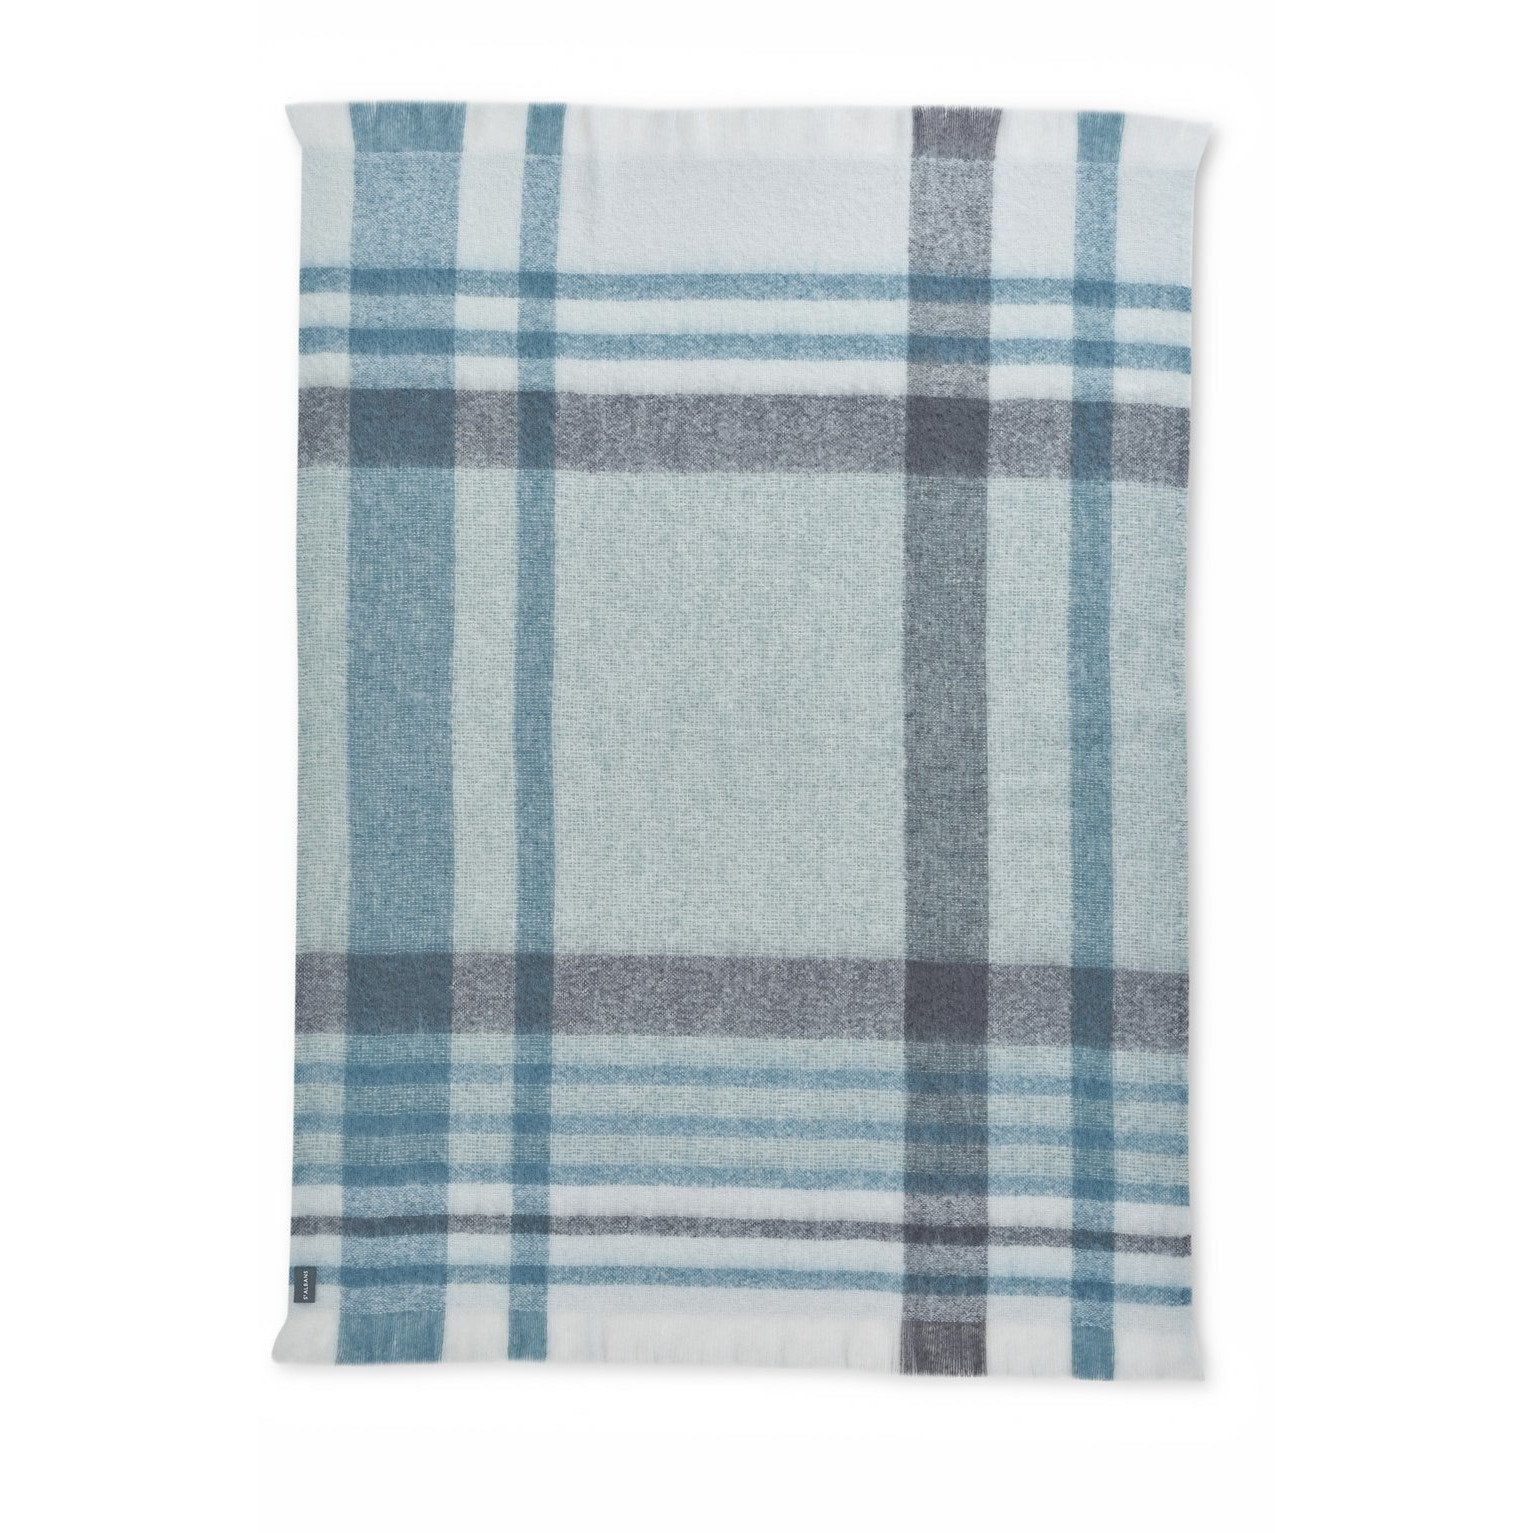 ST ALBANS MOHAIR THROW RUG  |  ELM